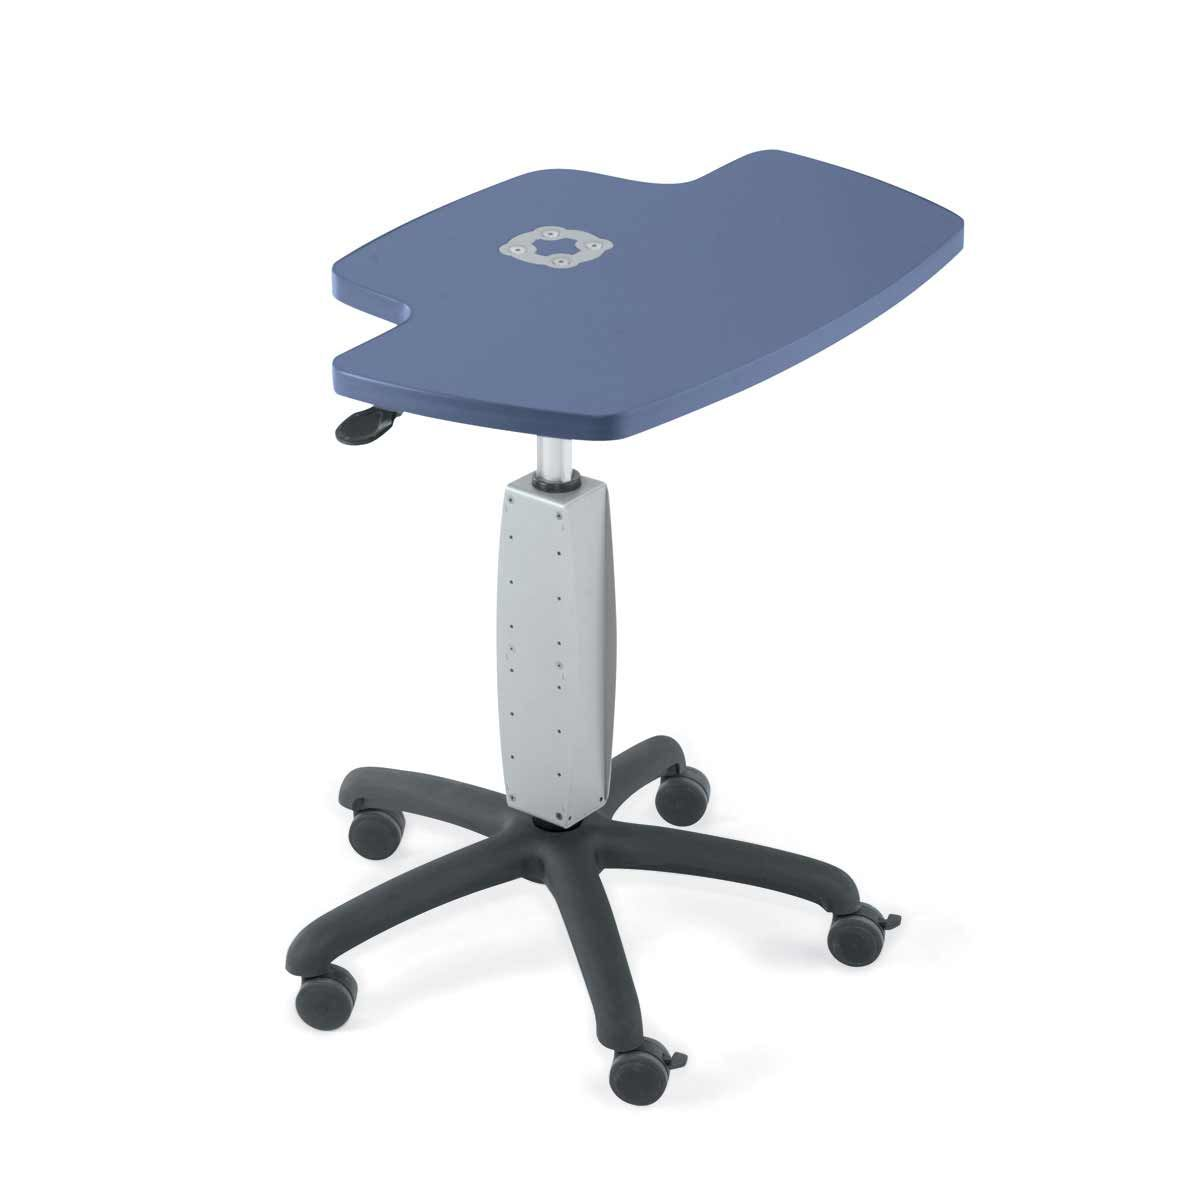 Anthro Height Adjustable Mobile Laptop Cart. SLJ